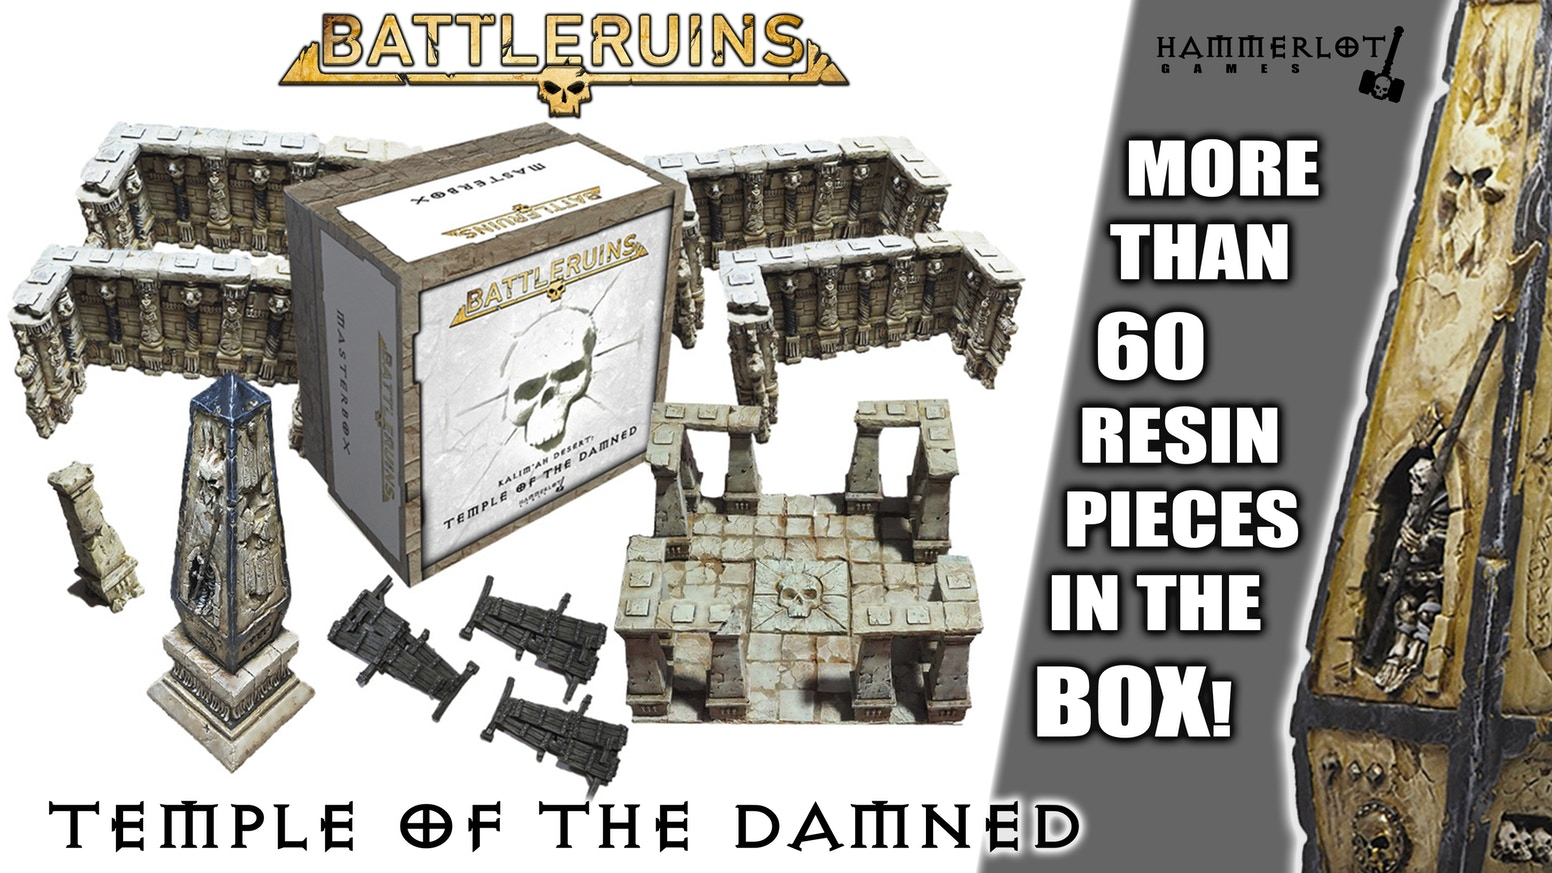 Scenery kit from undead desert to bring your wargames, RPGs, dungeon crawlers, skirmish games and any fantasy game to life.